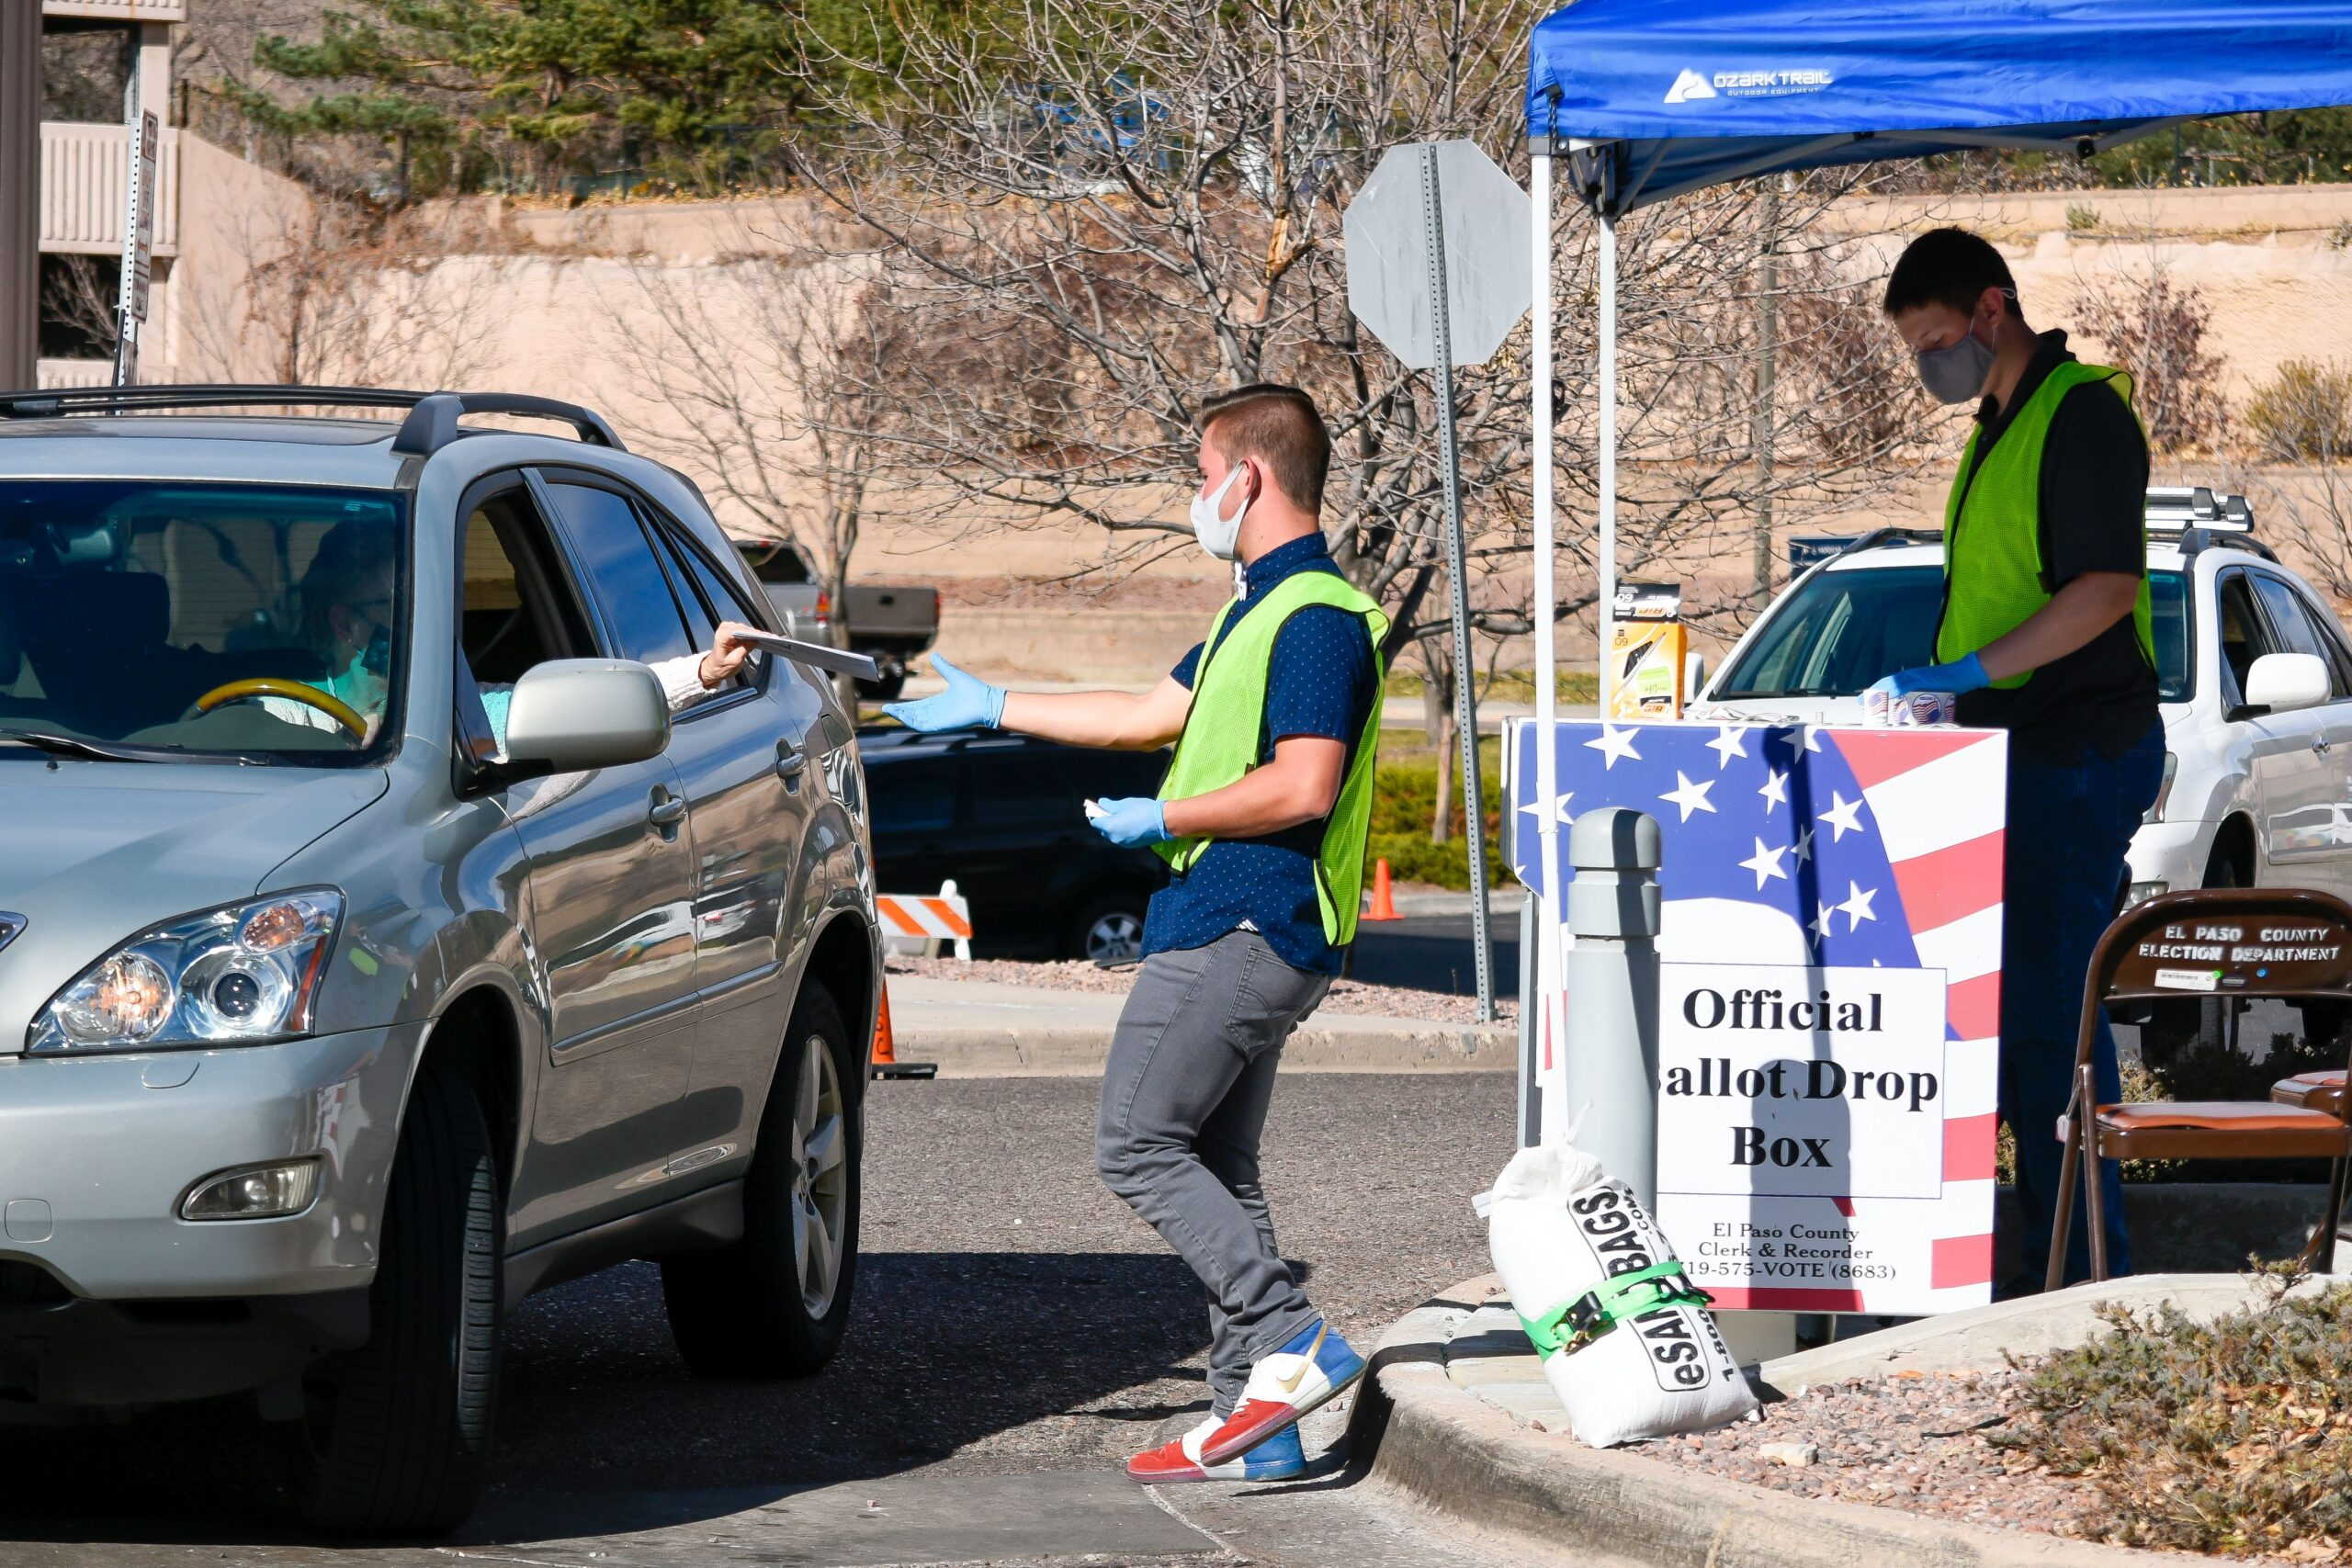 Ben Hellen collects ballots at the Citizen Service Center on Garden of the Gods Road in the northwest part of Colorado Springs on Election Day 2020. A steady stream of vehicles kept them busy throughout the morning.